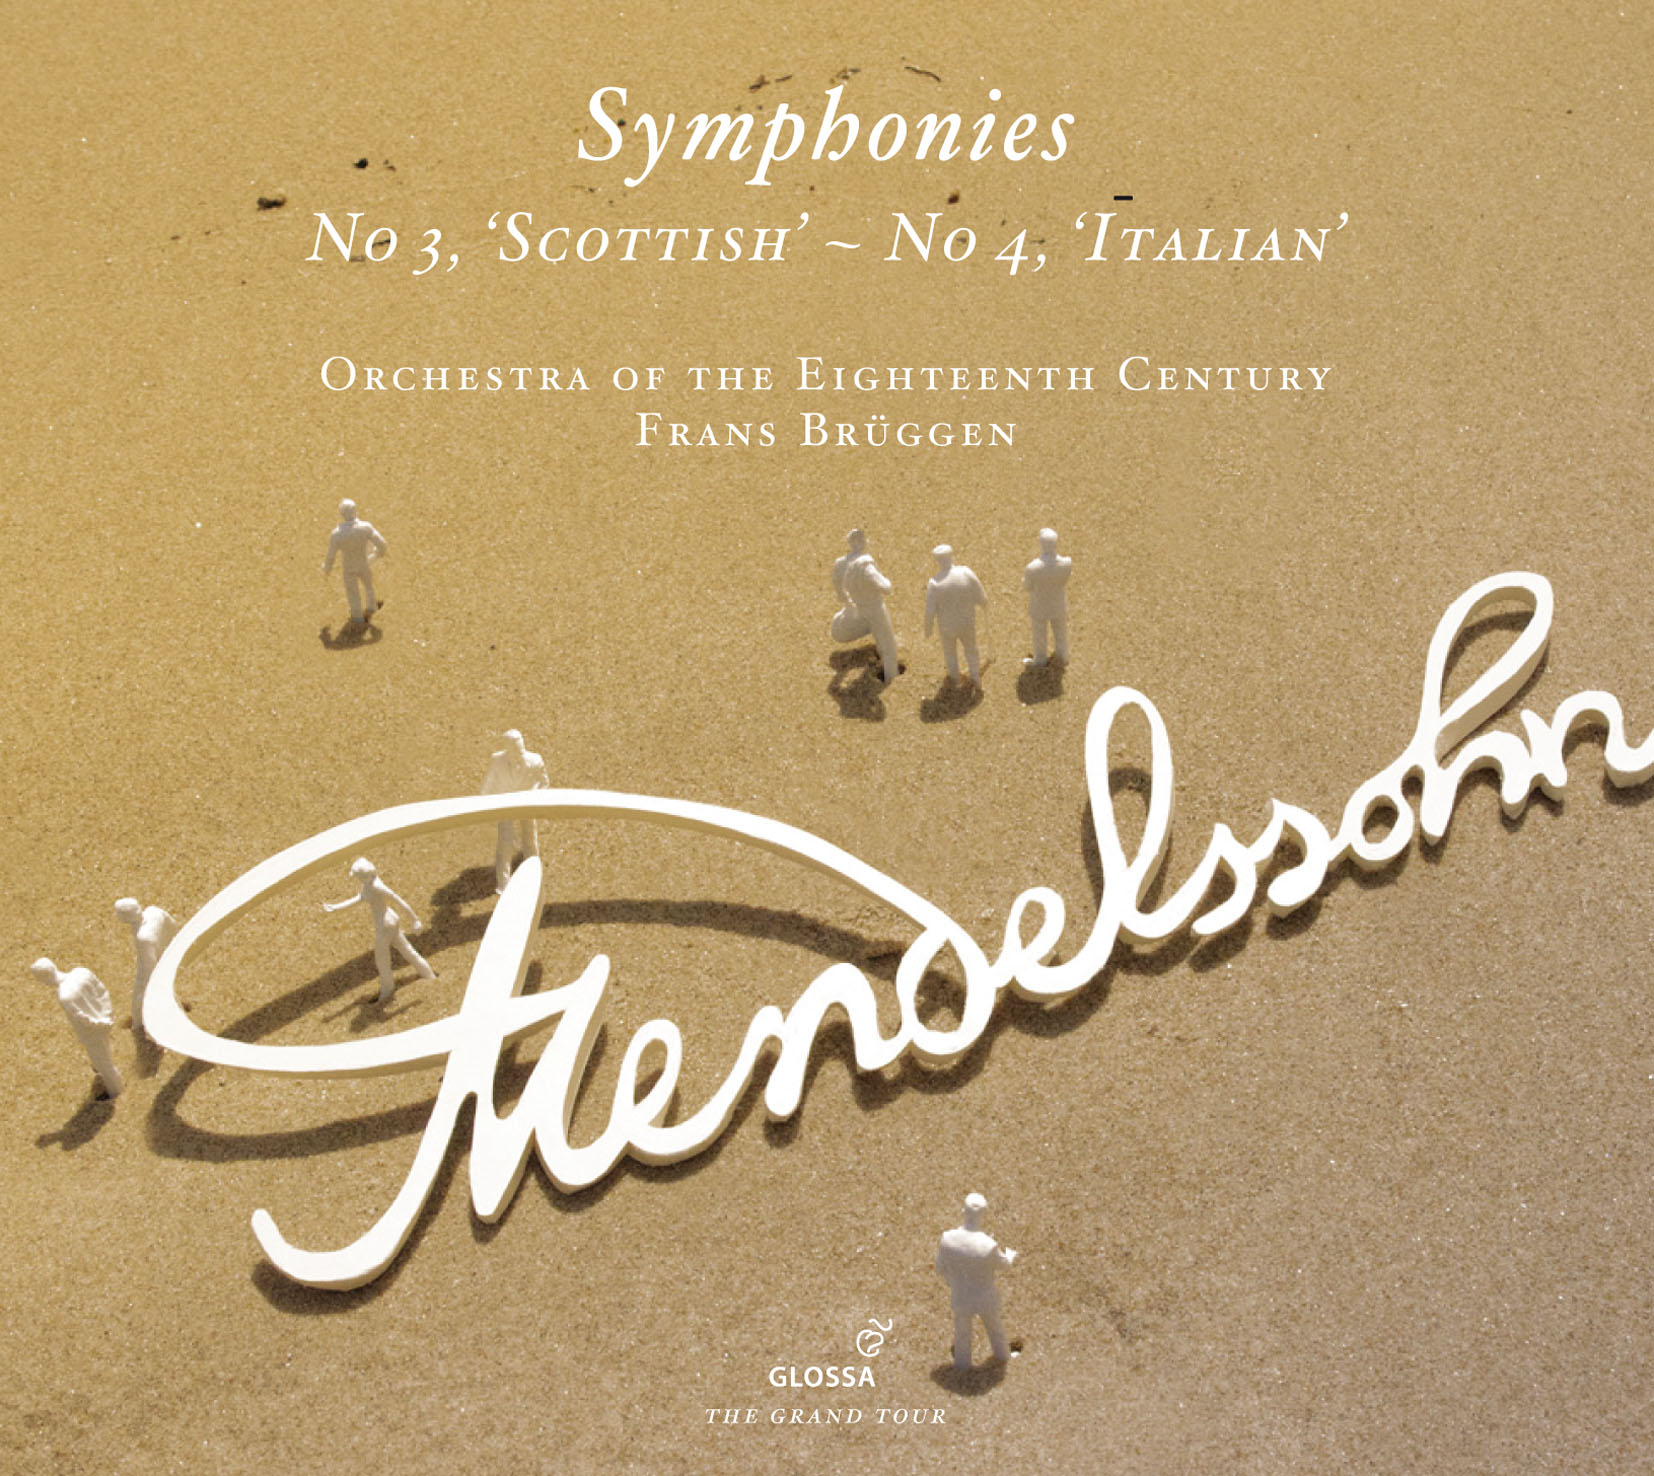 "Symphony No. 3 in A Minor, Op. 56, MWV N19, ""Scottish"", Symphony No. 3 in A Minor, Op. 56, MWV N19, ""Scottish"": I. Andante con moto - Allegro un poco agitato - Assai animato"